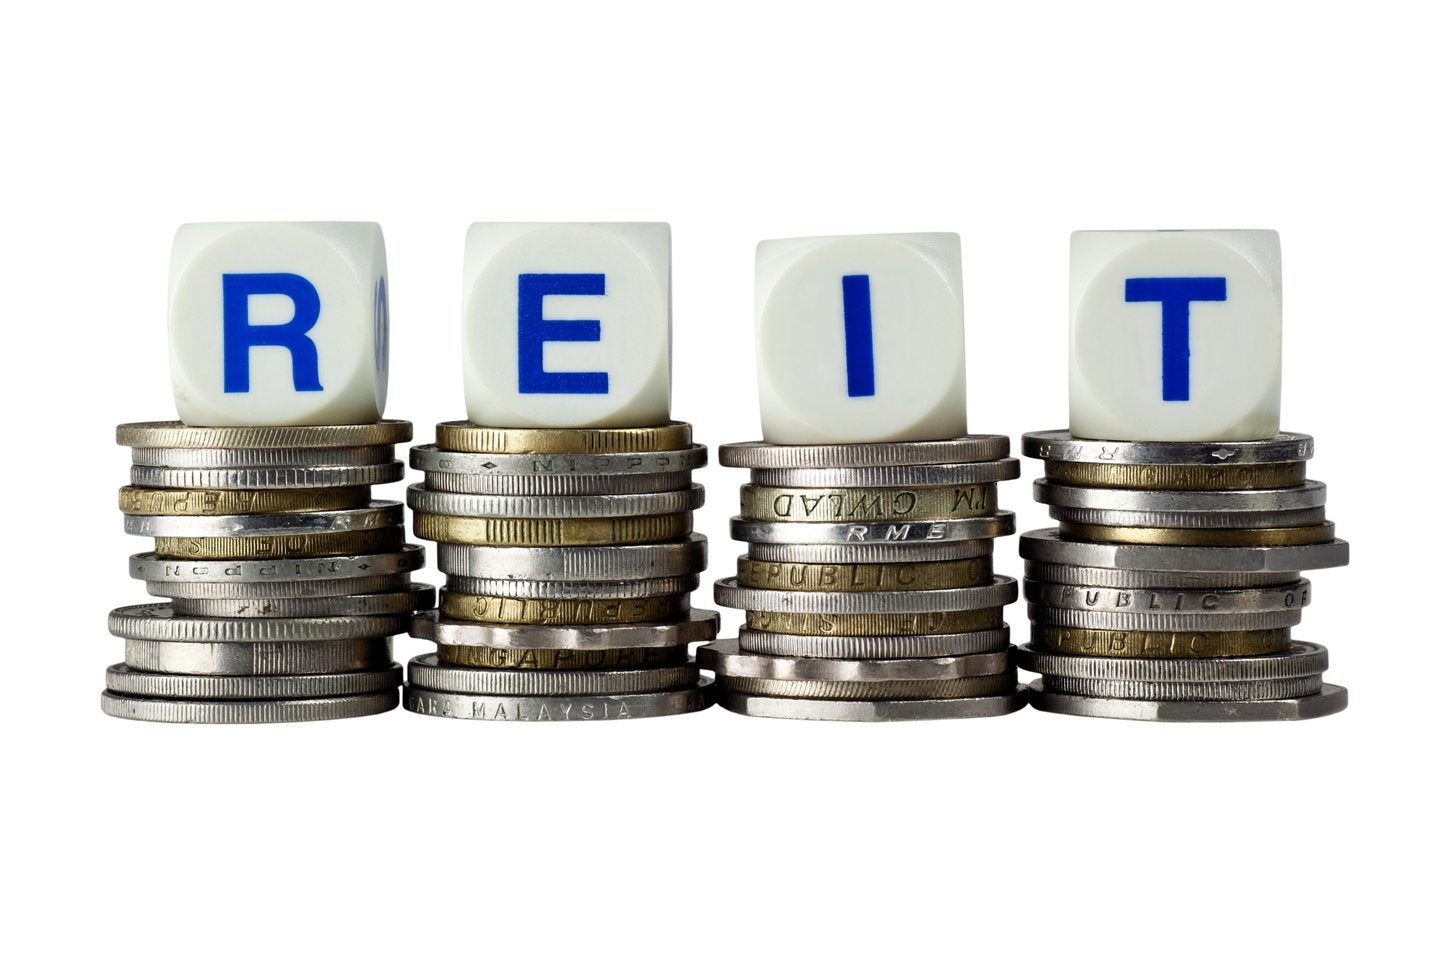 REIT spelled out on dice on top of coins